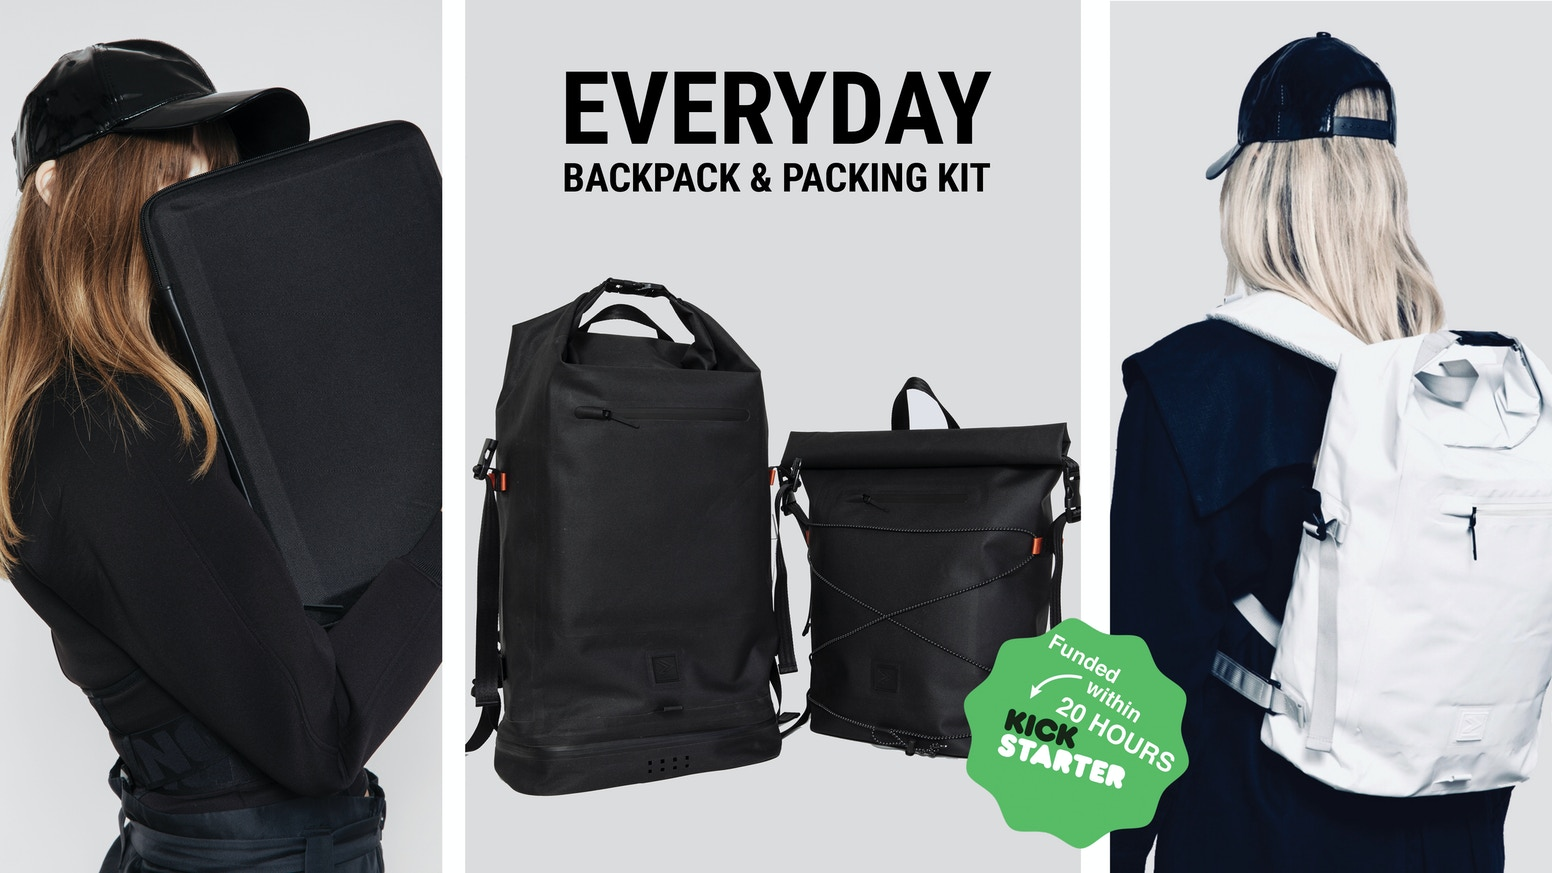 Simplicity made right. One backpack and tailored packing solution for work and leisure time designed with focus on what is essential.